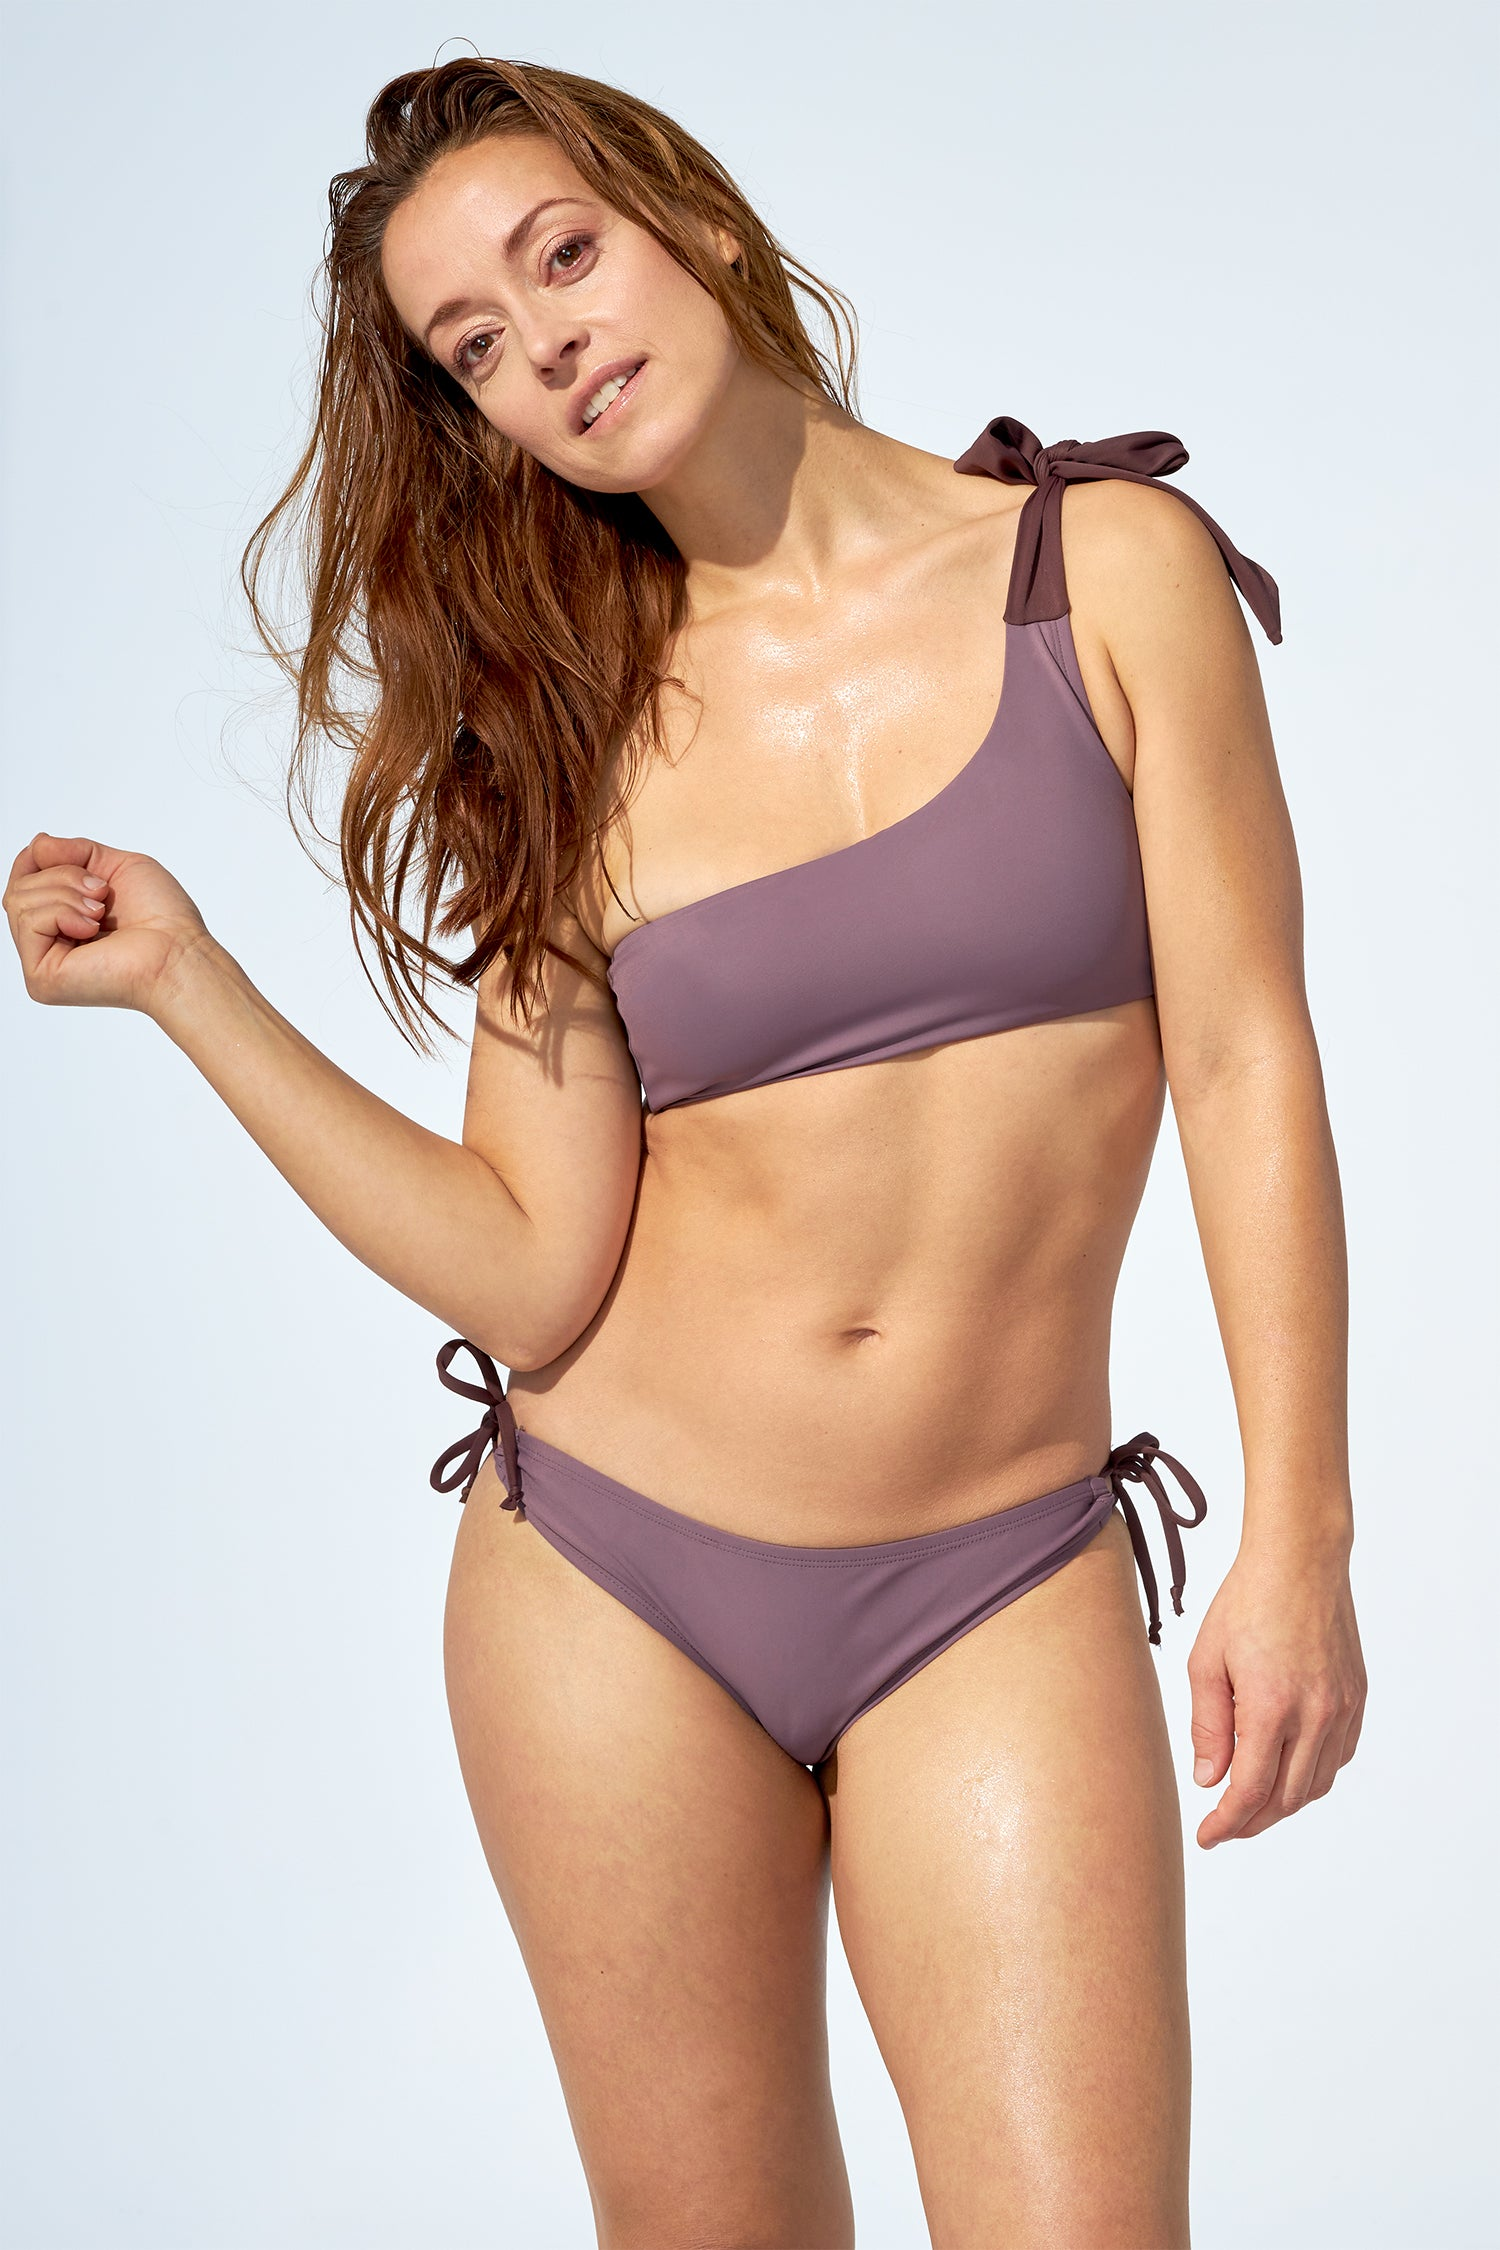 MARGOT - Bikini top in soft purple